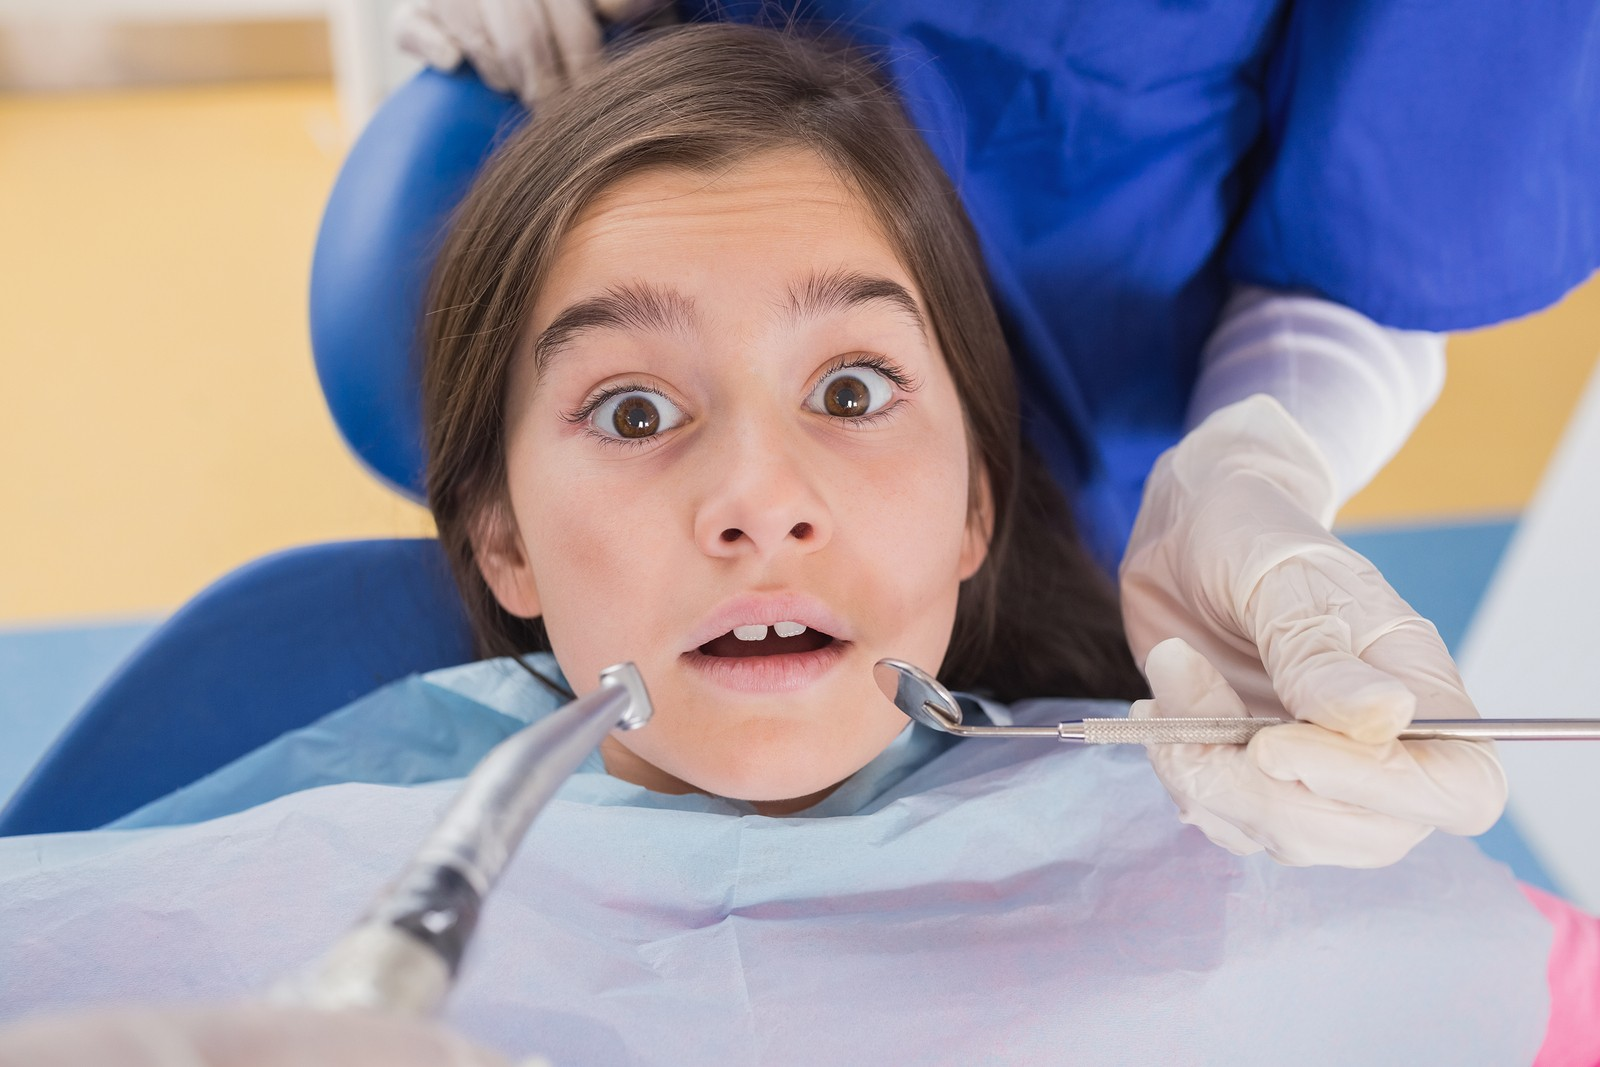 Nucalm Dentistry - The Solution to Dental Anxiety